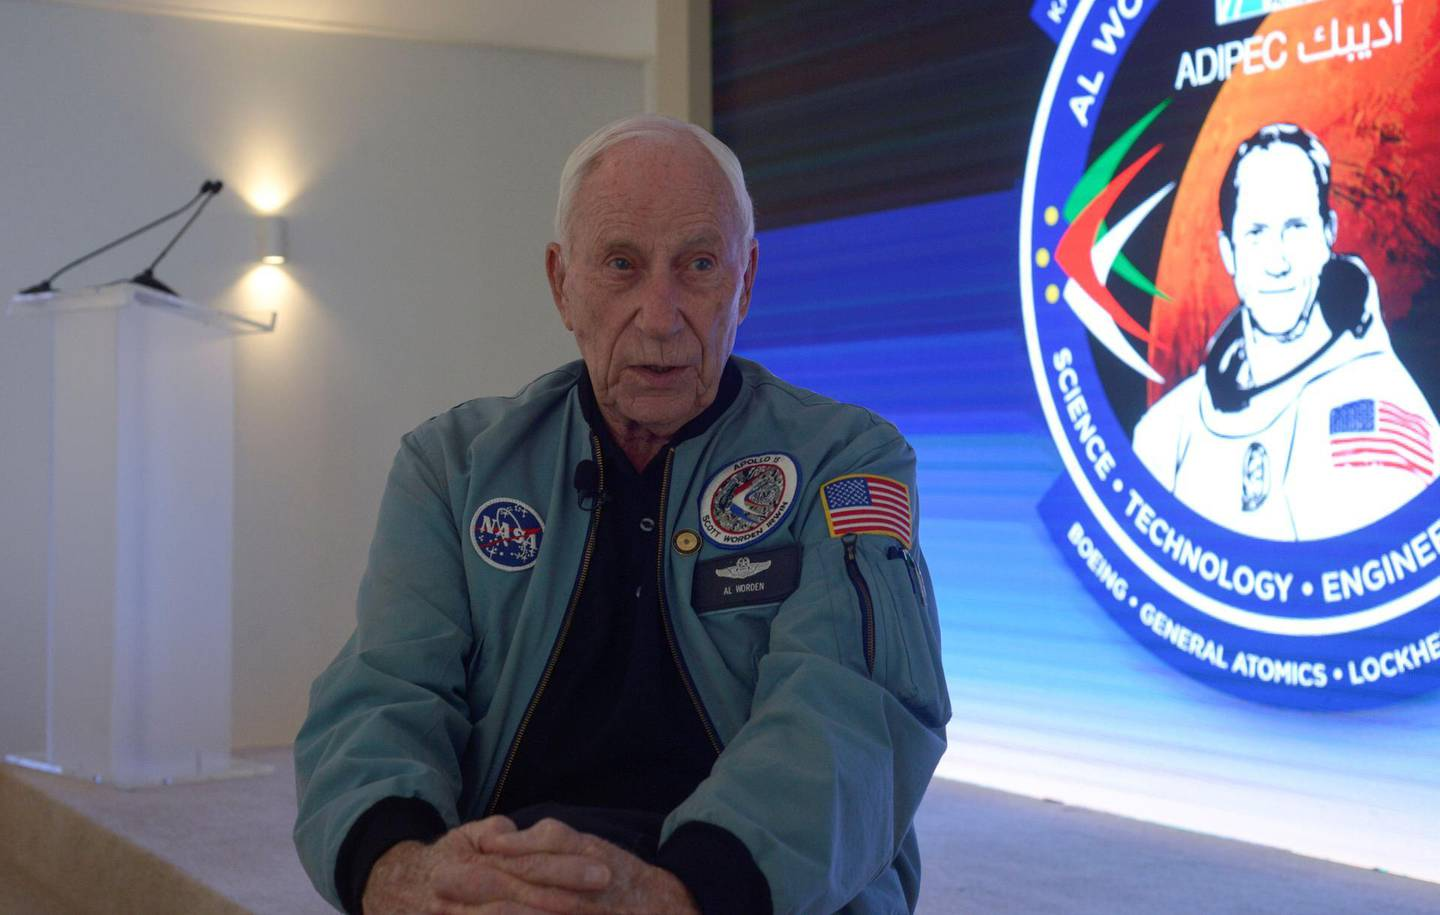 Abu Dhabi, United Arab Emirates - Alfred Worden, an American astronaut and engineer who was the Command Module Pilot for the Apollo 15 lunar mission in 1971 attended the Abu Dhabi International Petroleum Exhibition and Conference at ADNEC on Wednesday November 15, 2017. (Khushnum Bhandari/ The National)